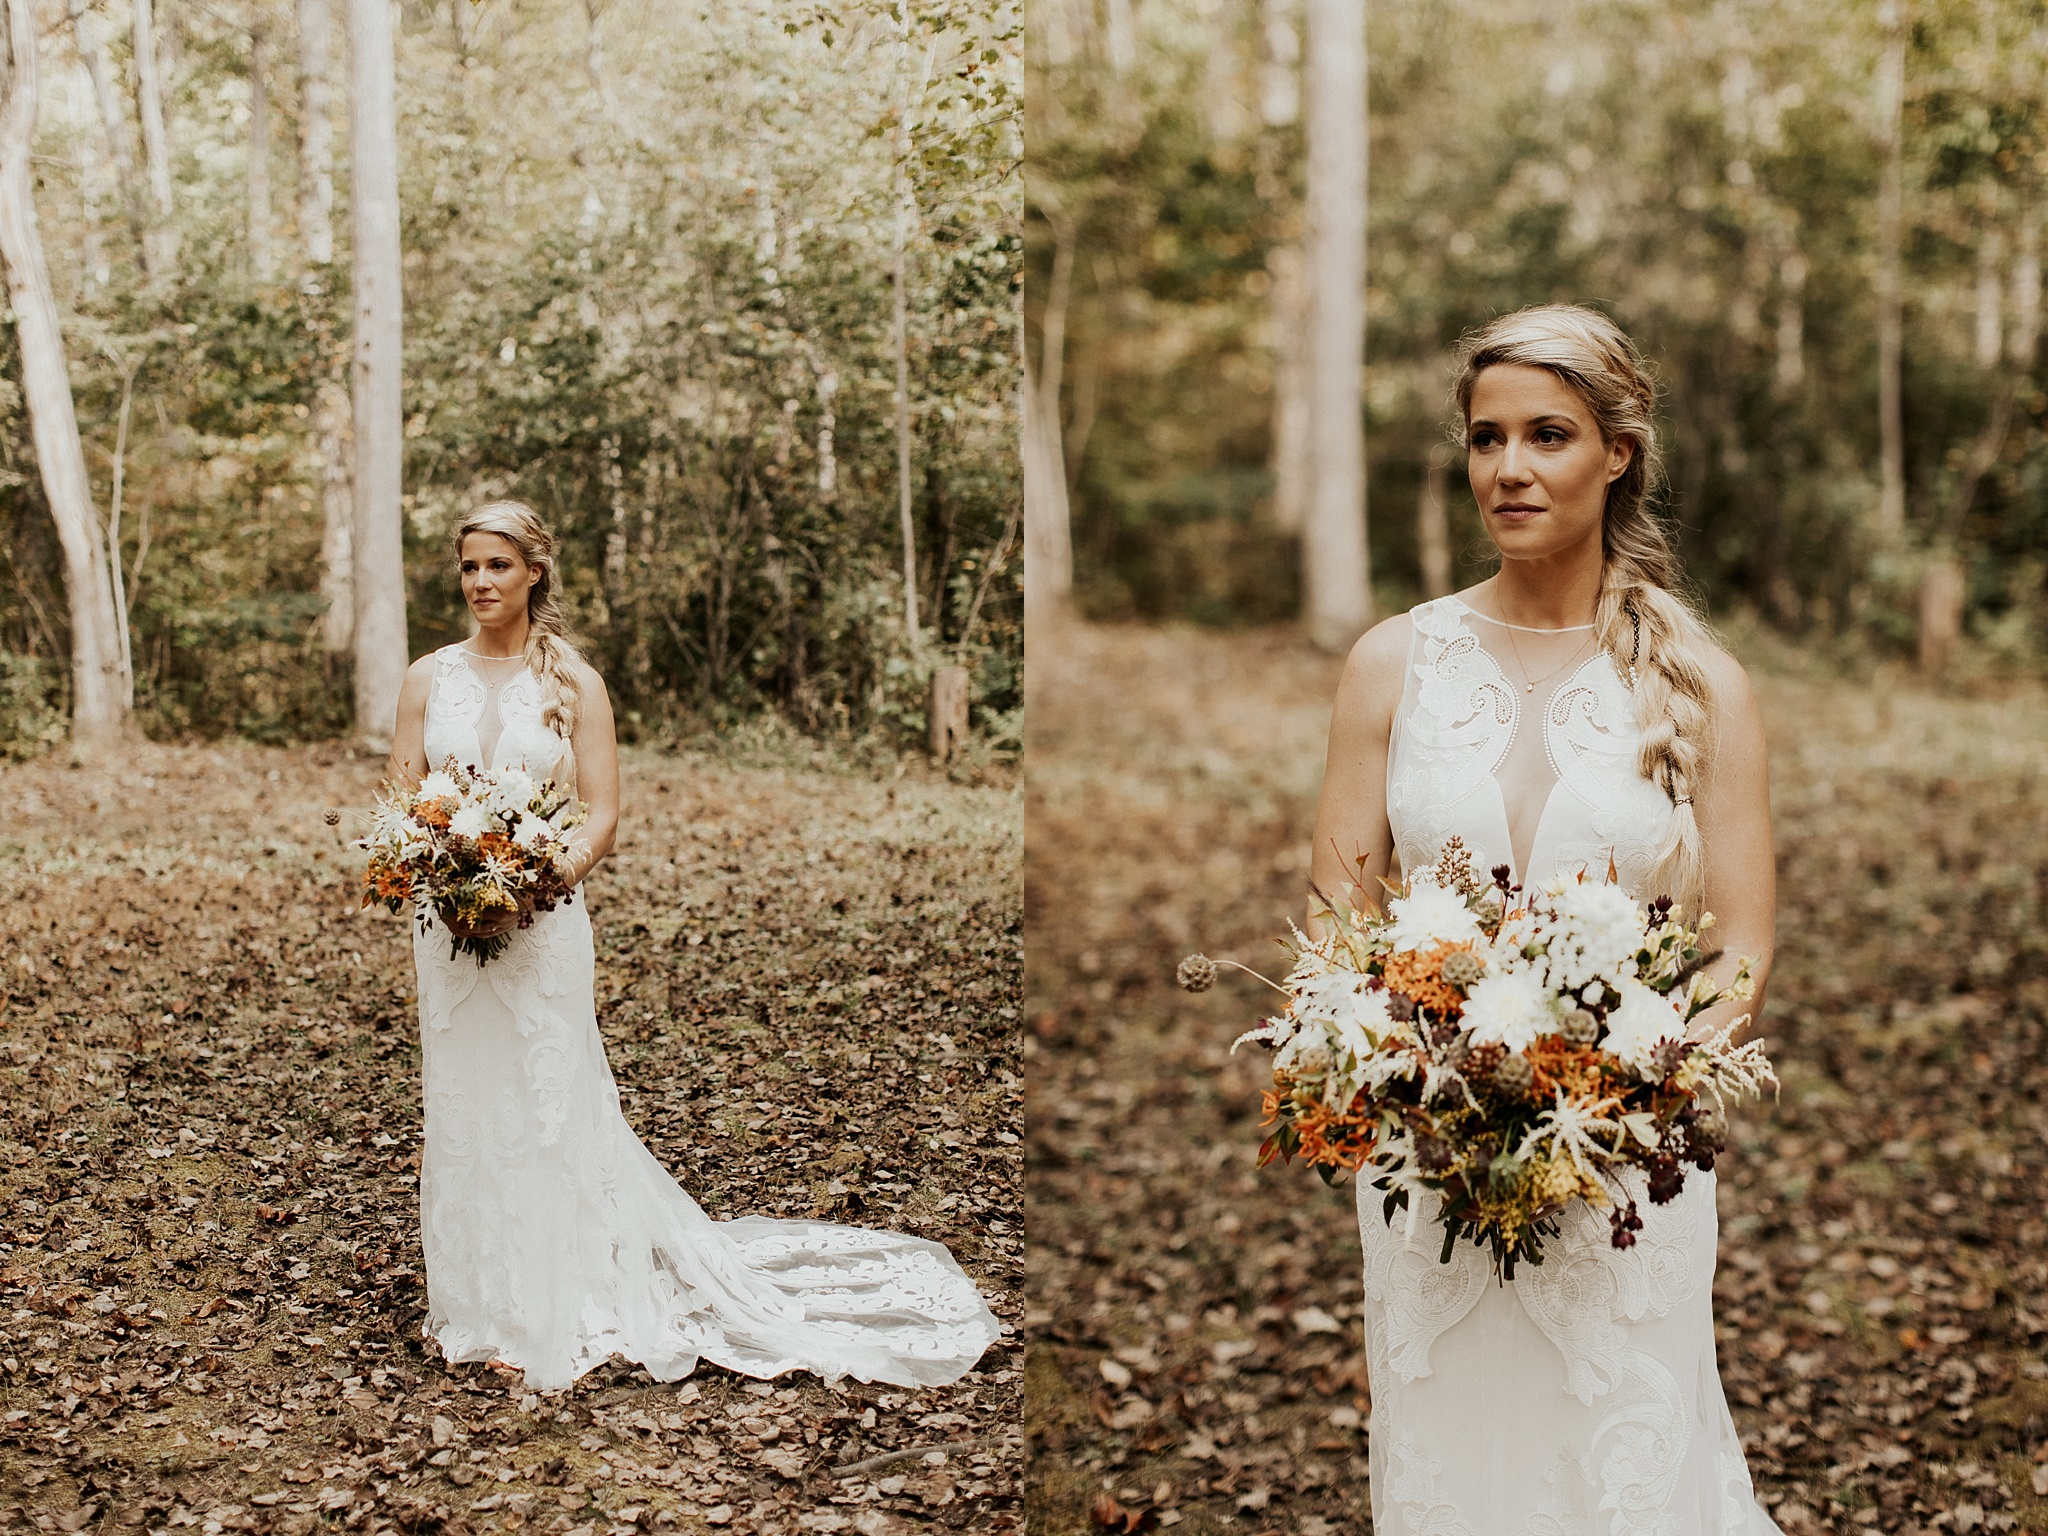 sugarboo_farms_intimate_mountain_wedding040.JPG